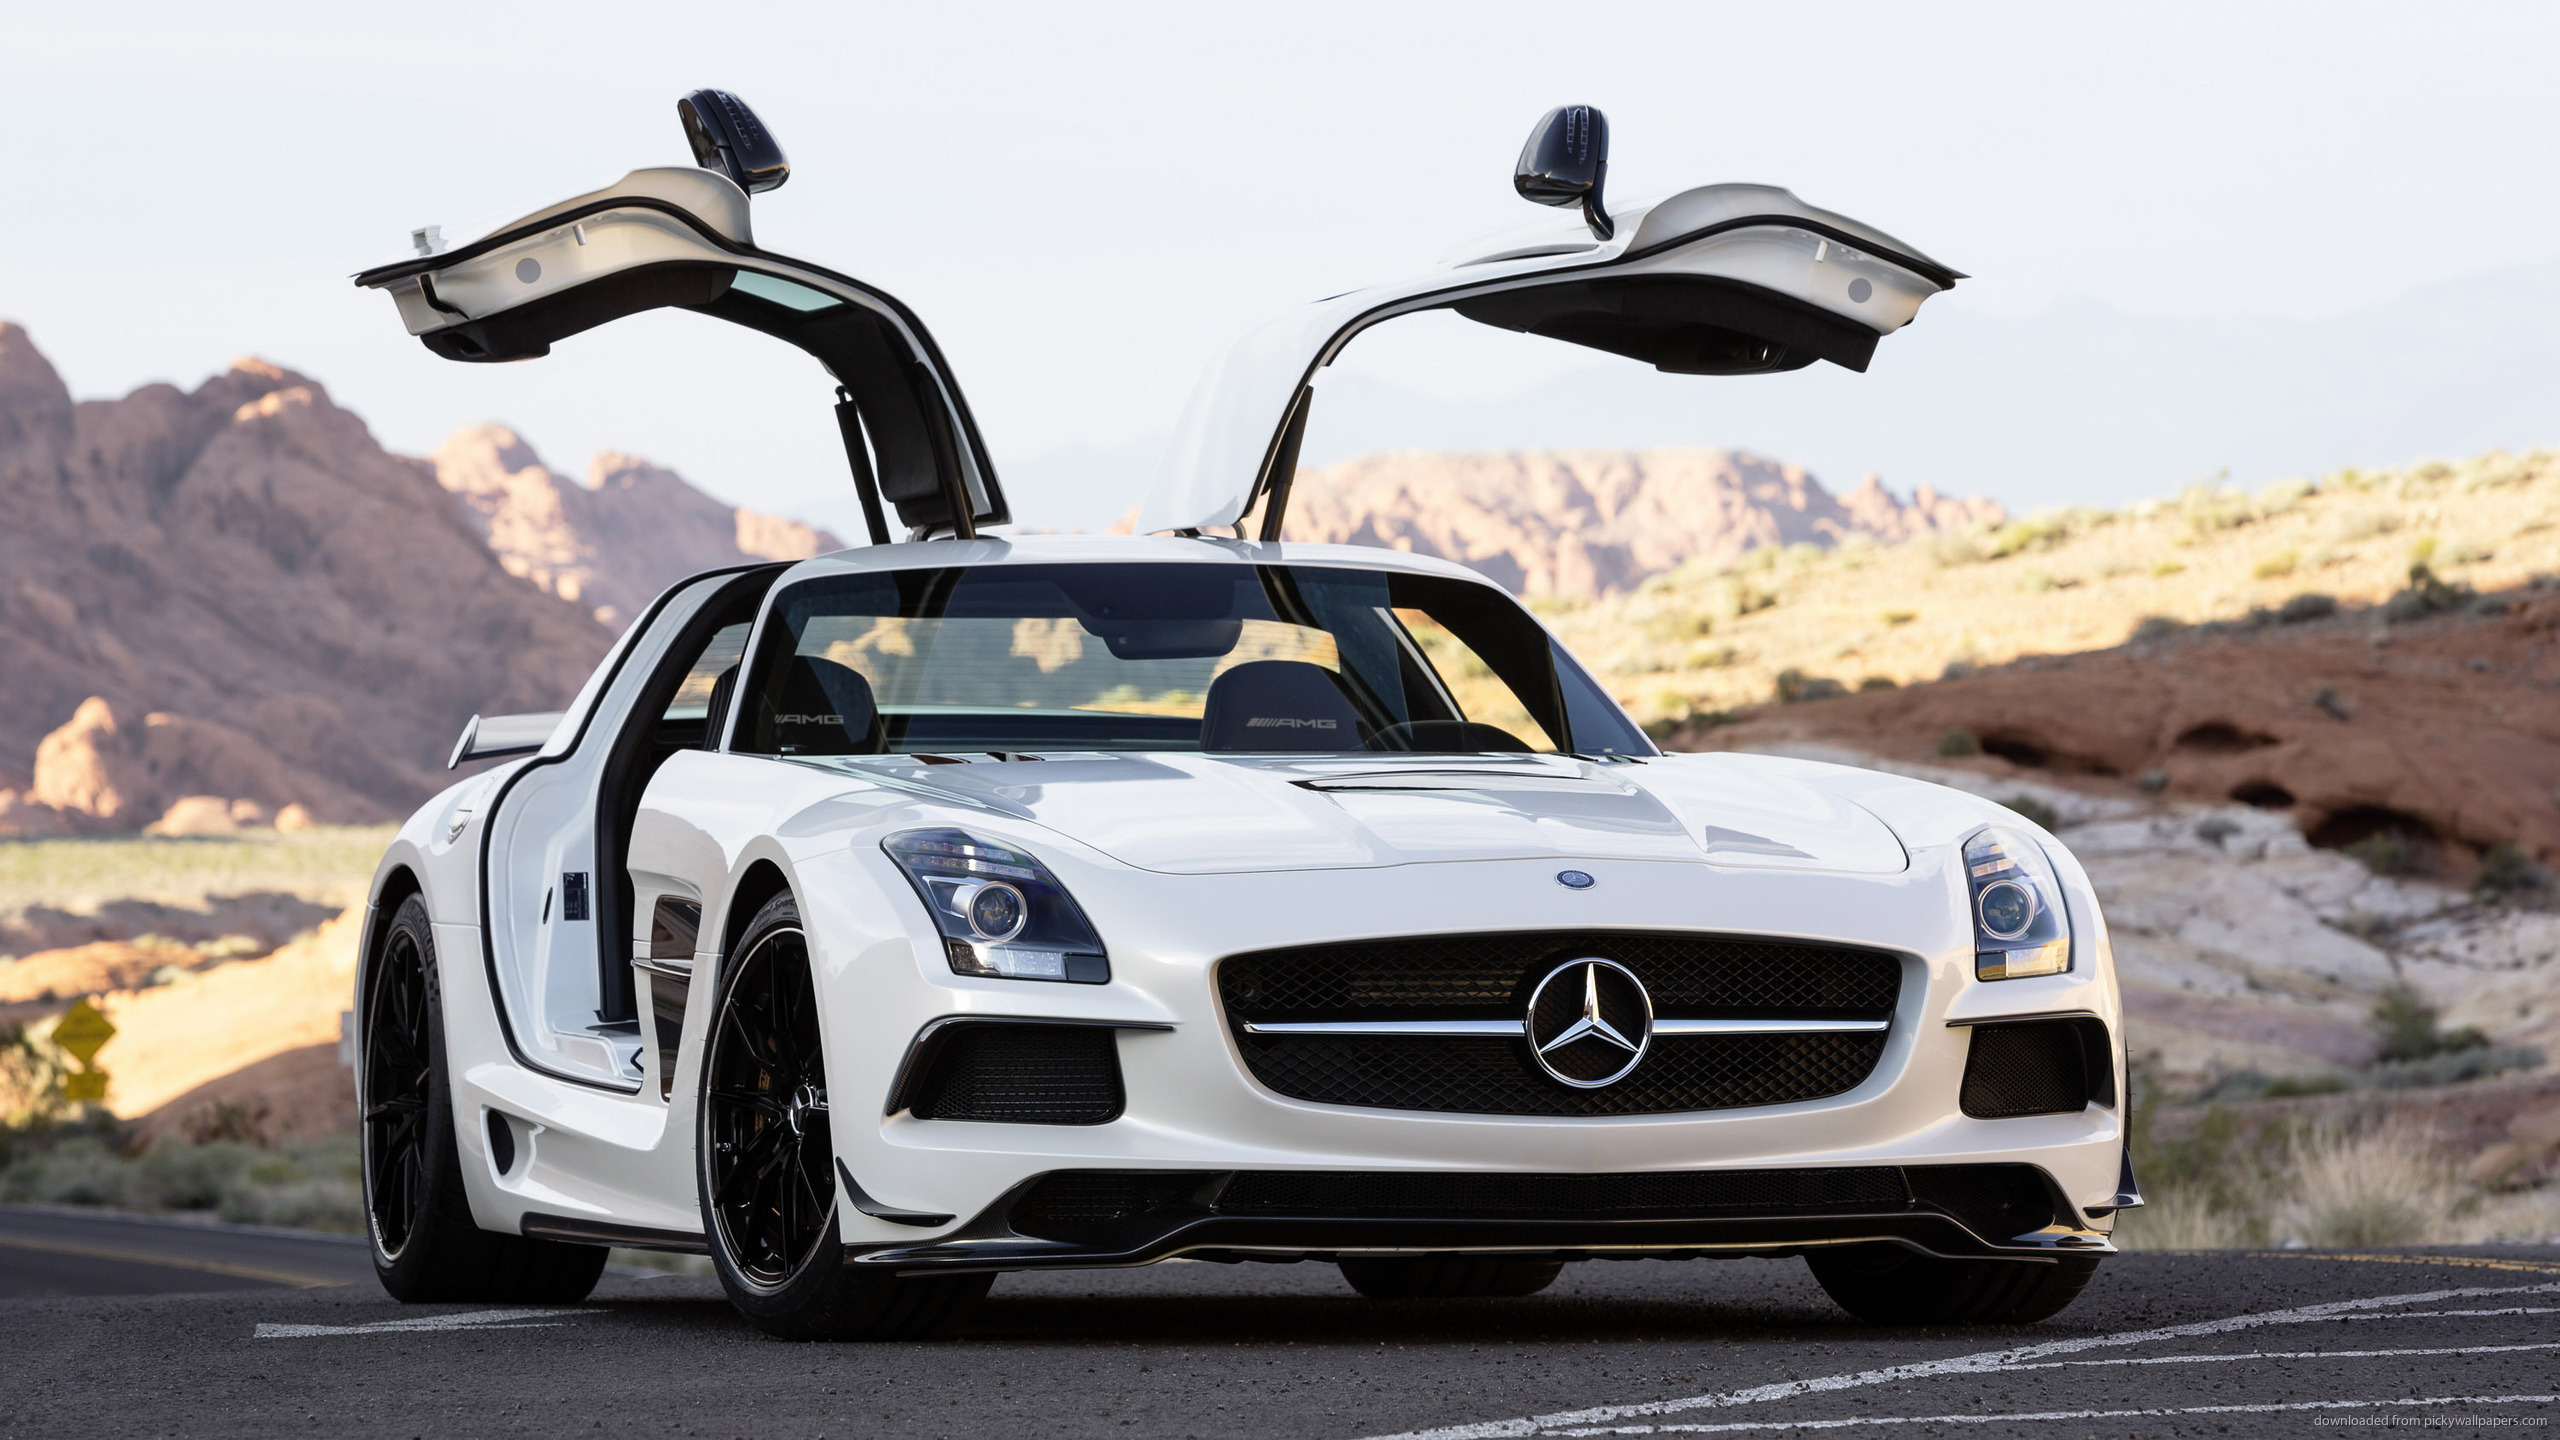 37 mercedes benz sls amg hd wallpapers backgrounds wallpaper abyss. Black Bedroom Furniture Sets. Home Design Ideas